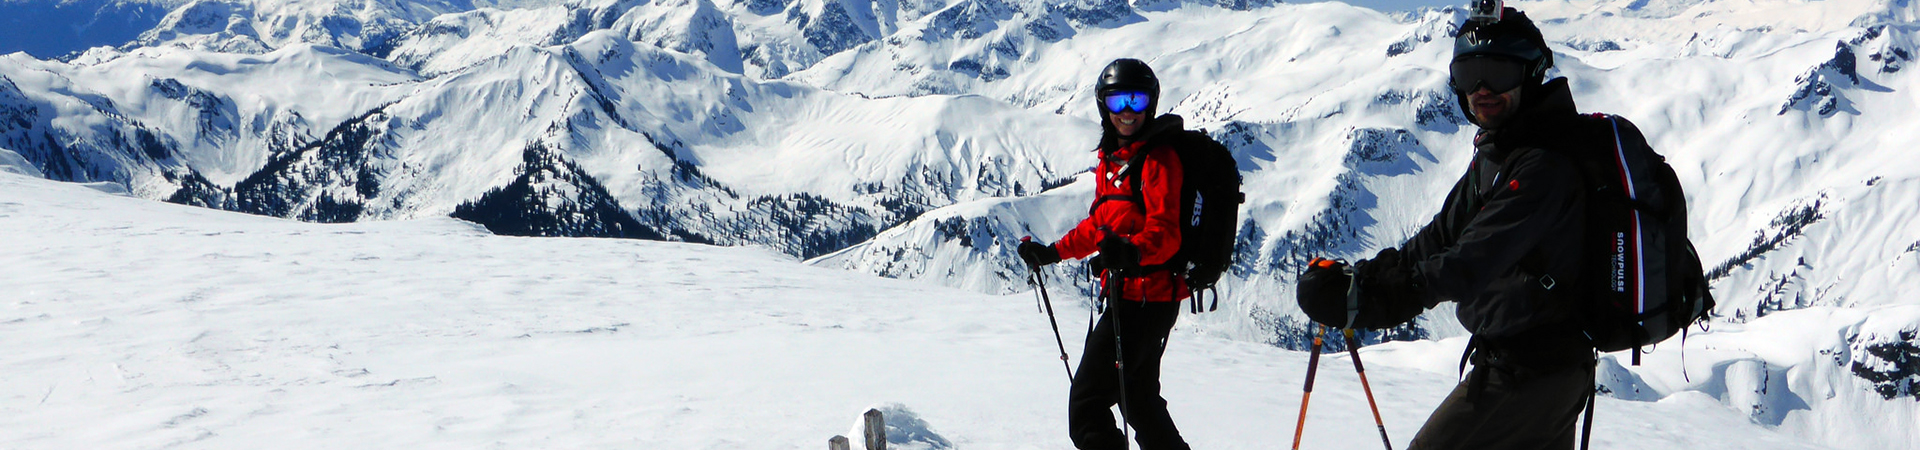 Ski canada trips and winter vacation packages to for Best winter vacation deals